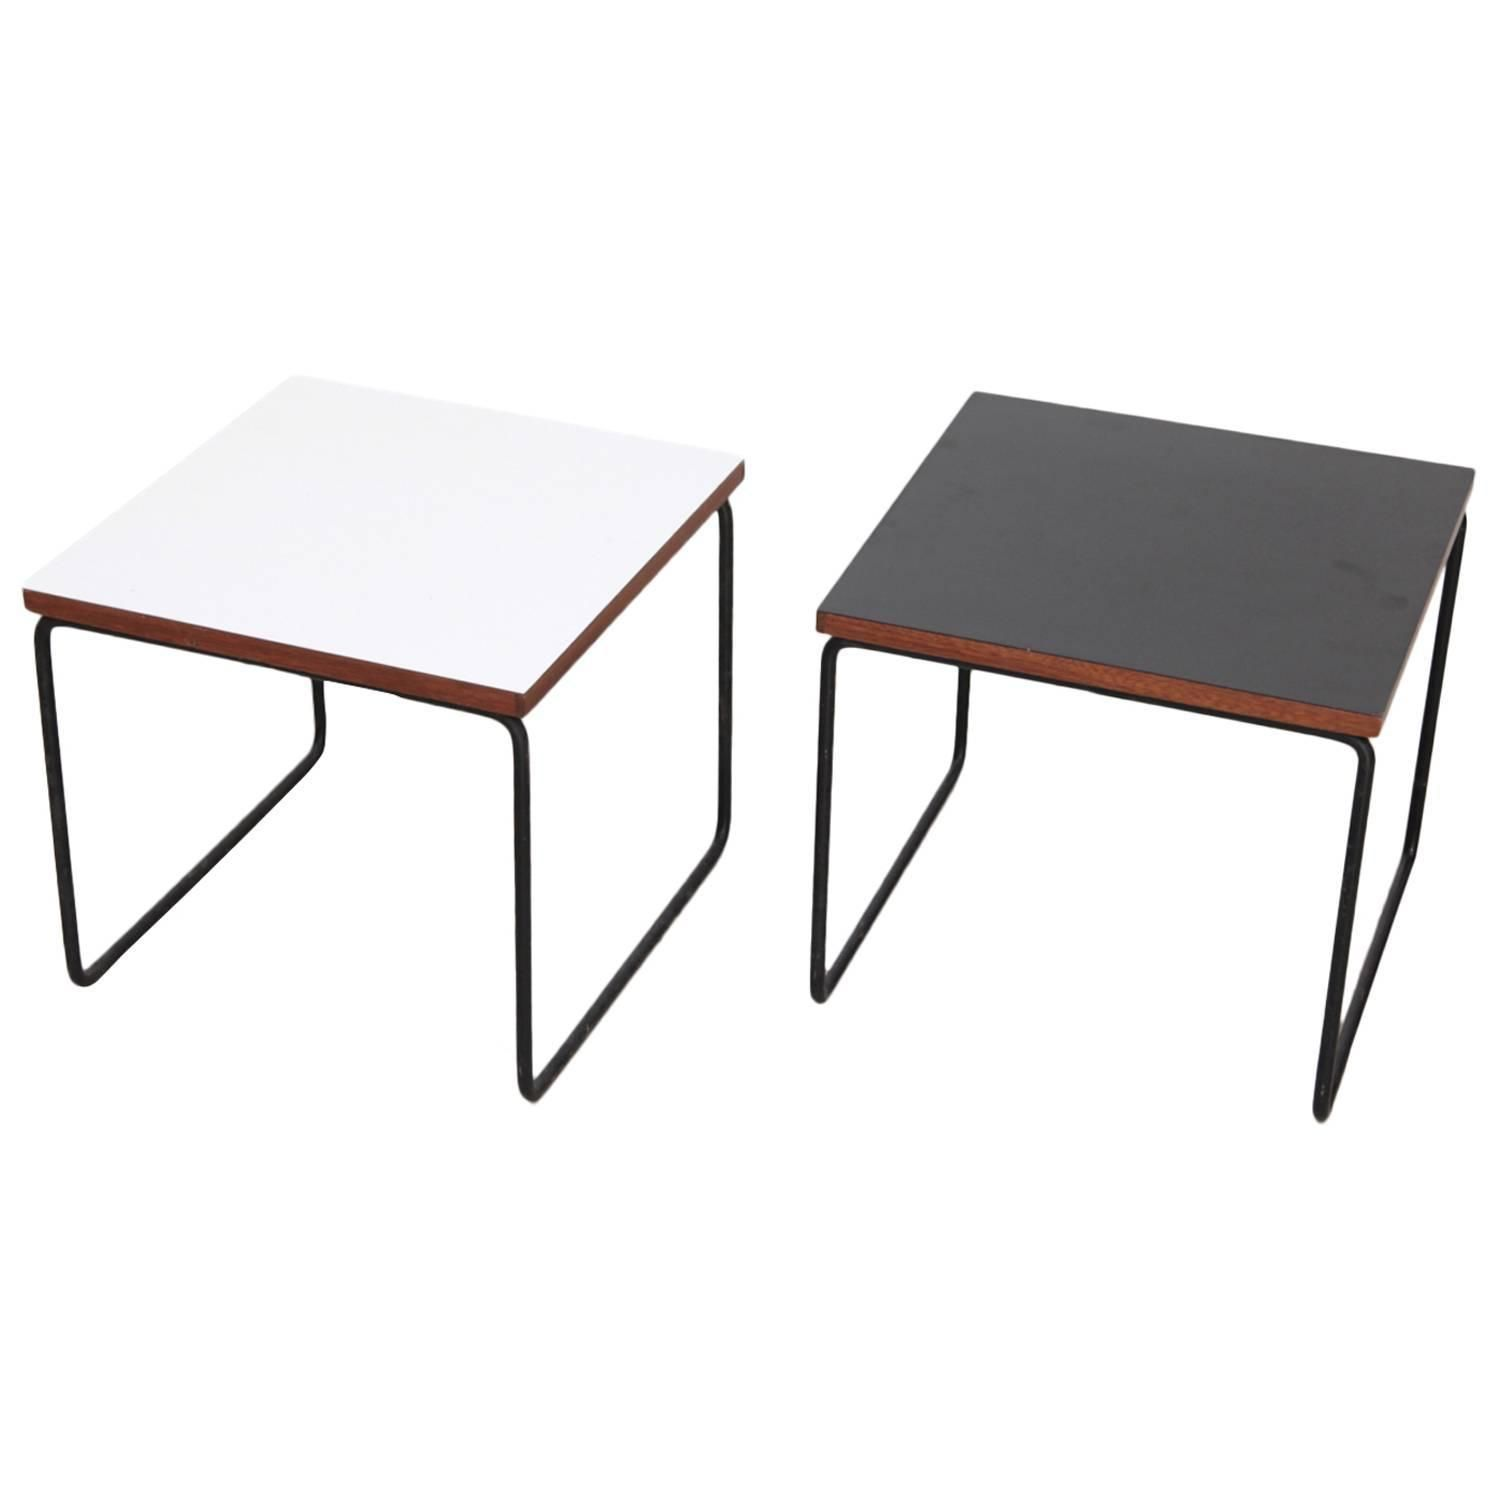 Pair Of Pierre Guariche Side Or End Tables For Steiner France Around 1950